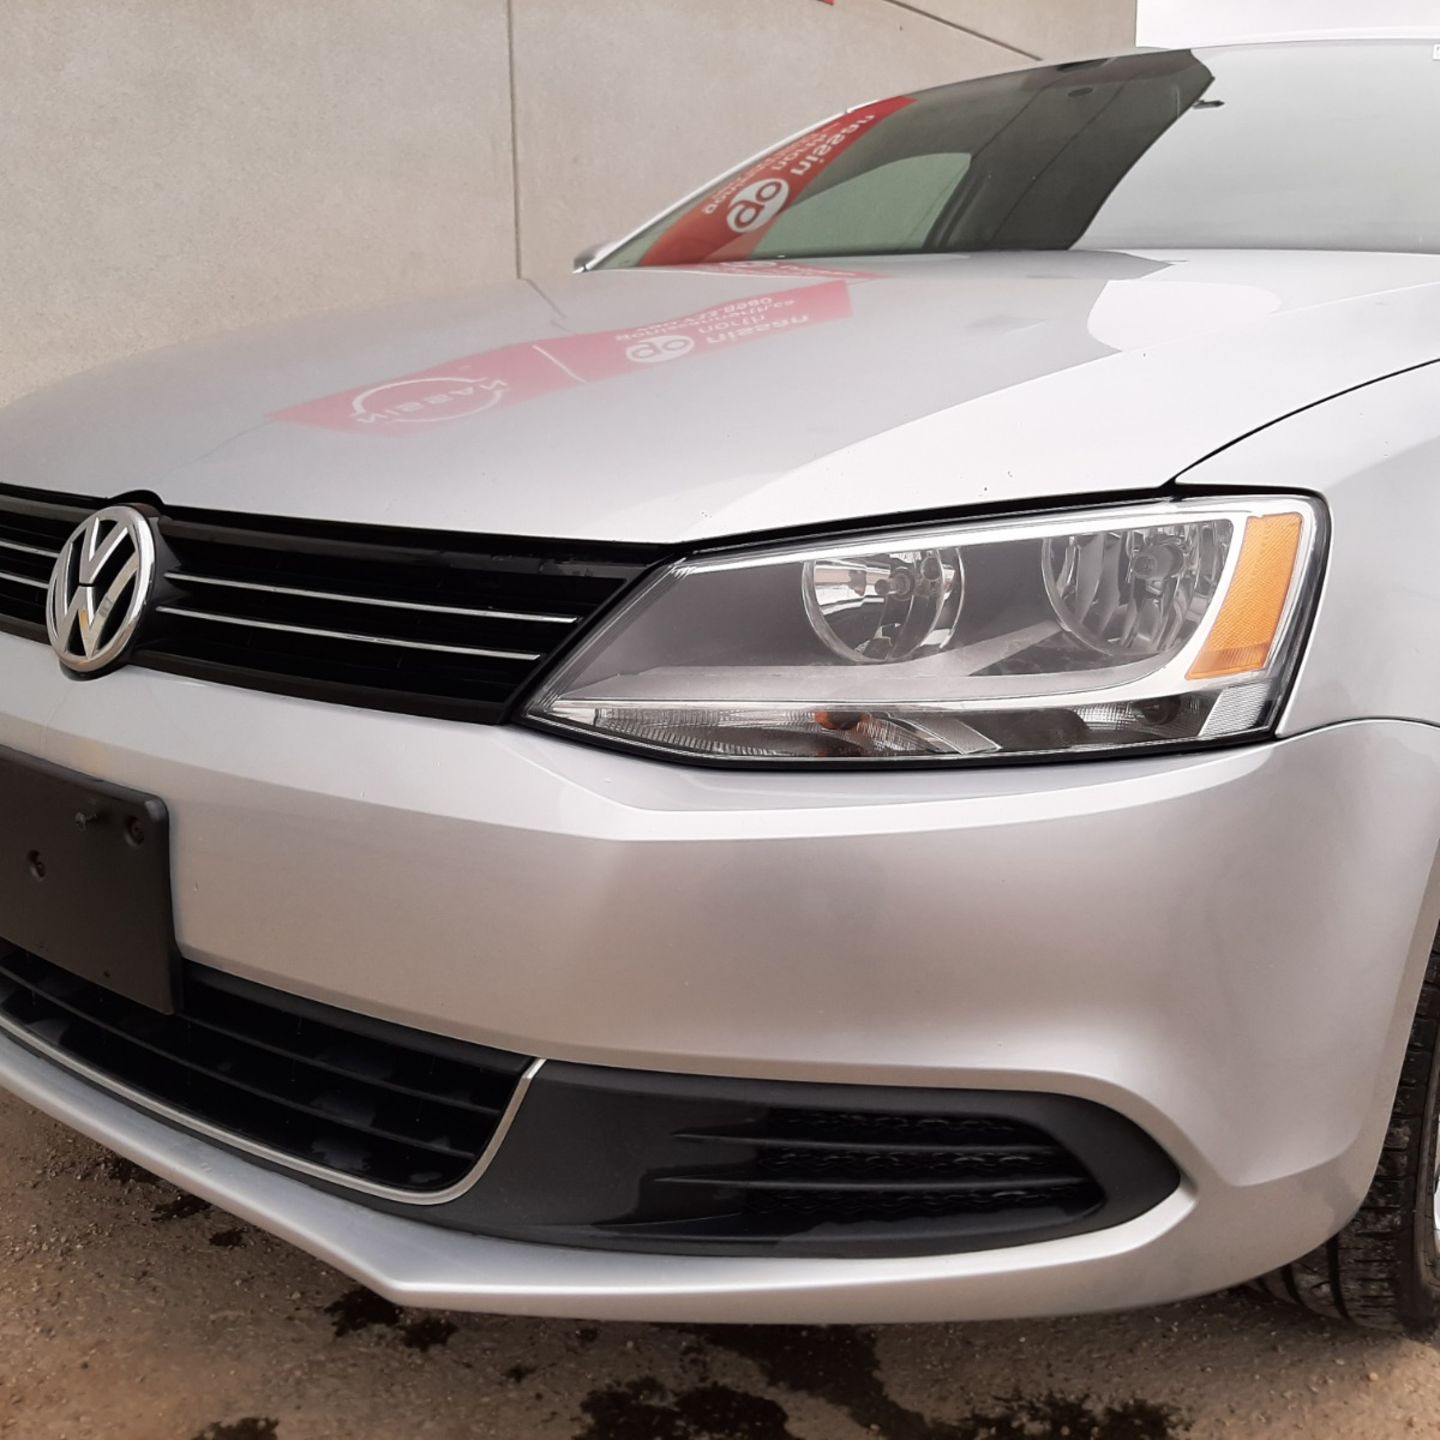 2014 Volkswagen Jetta Sedan Comfortline for sale in Edmonton, Alberta